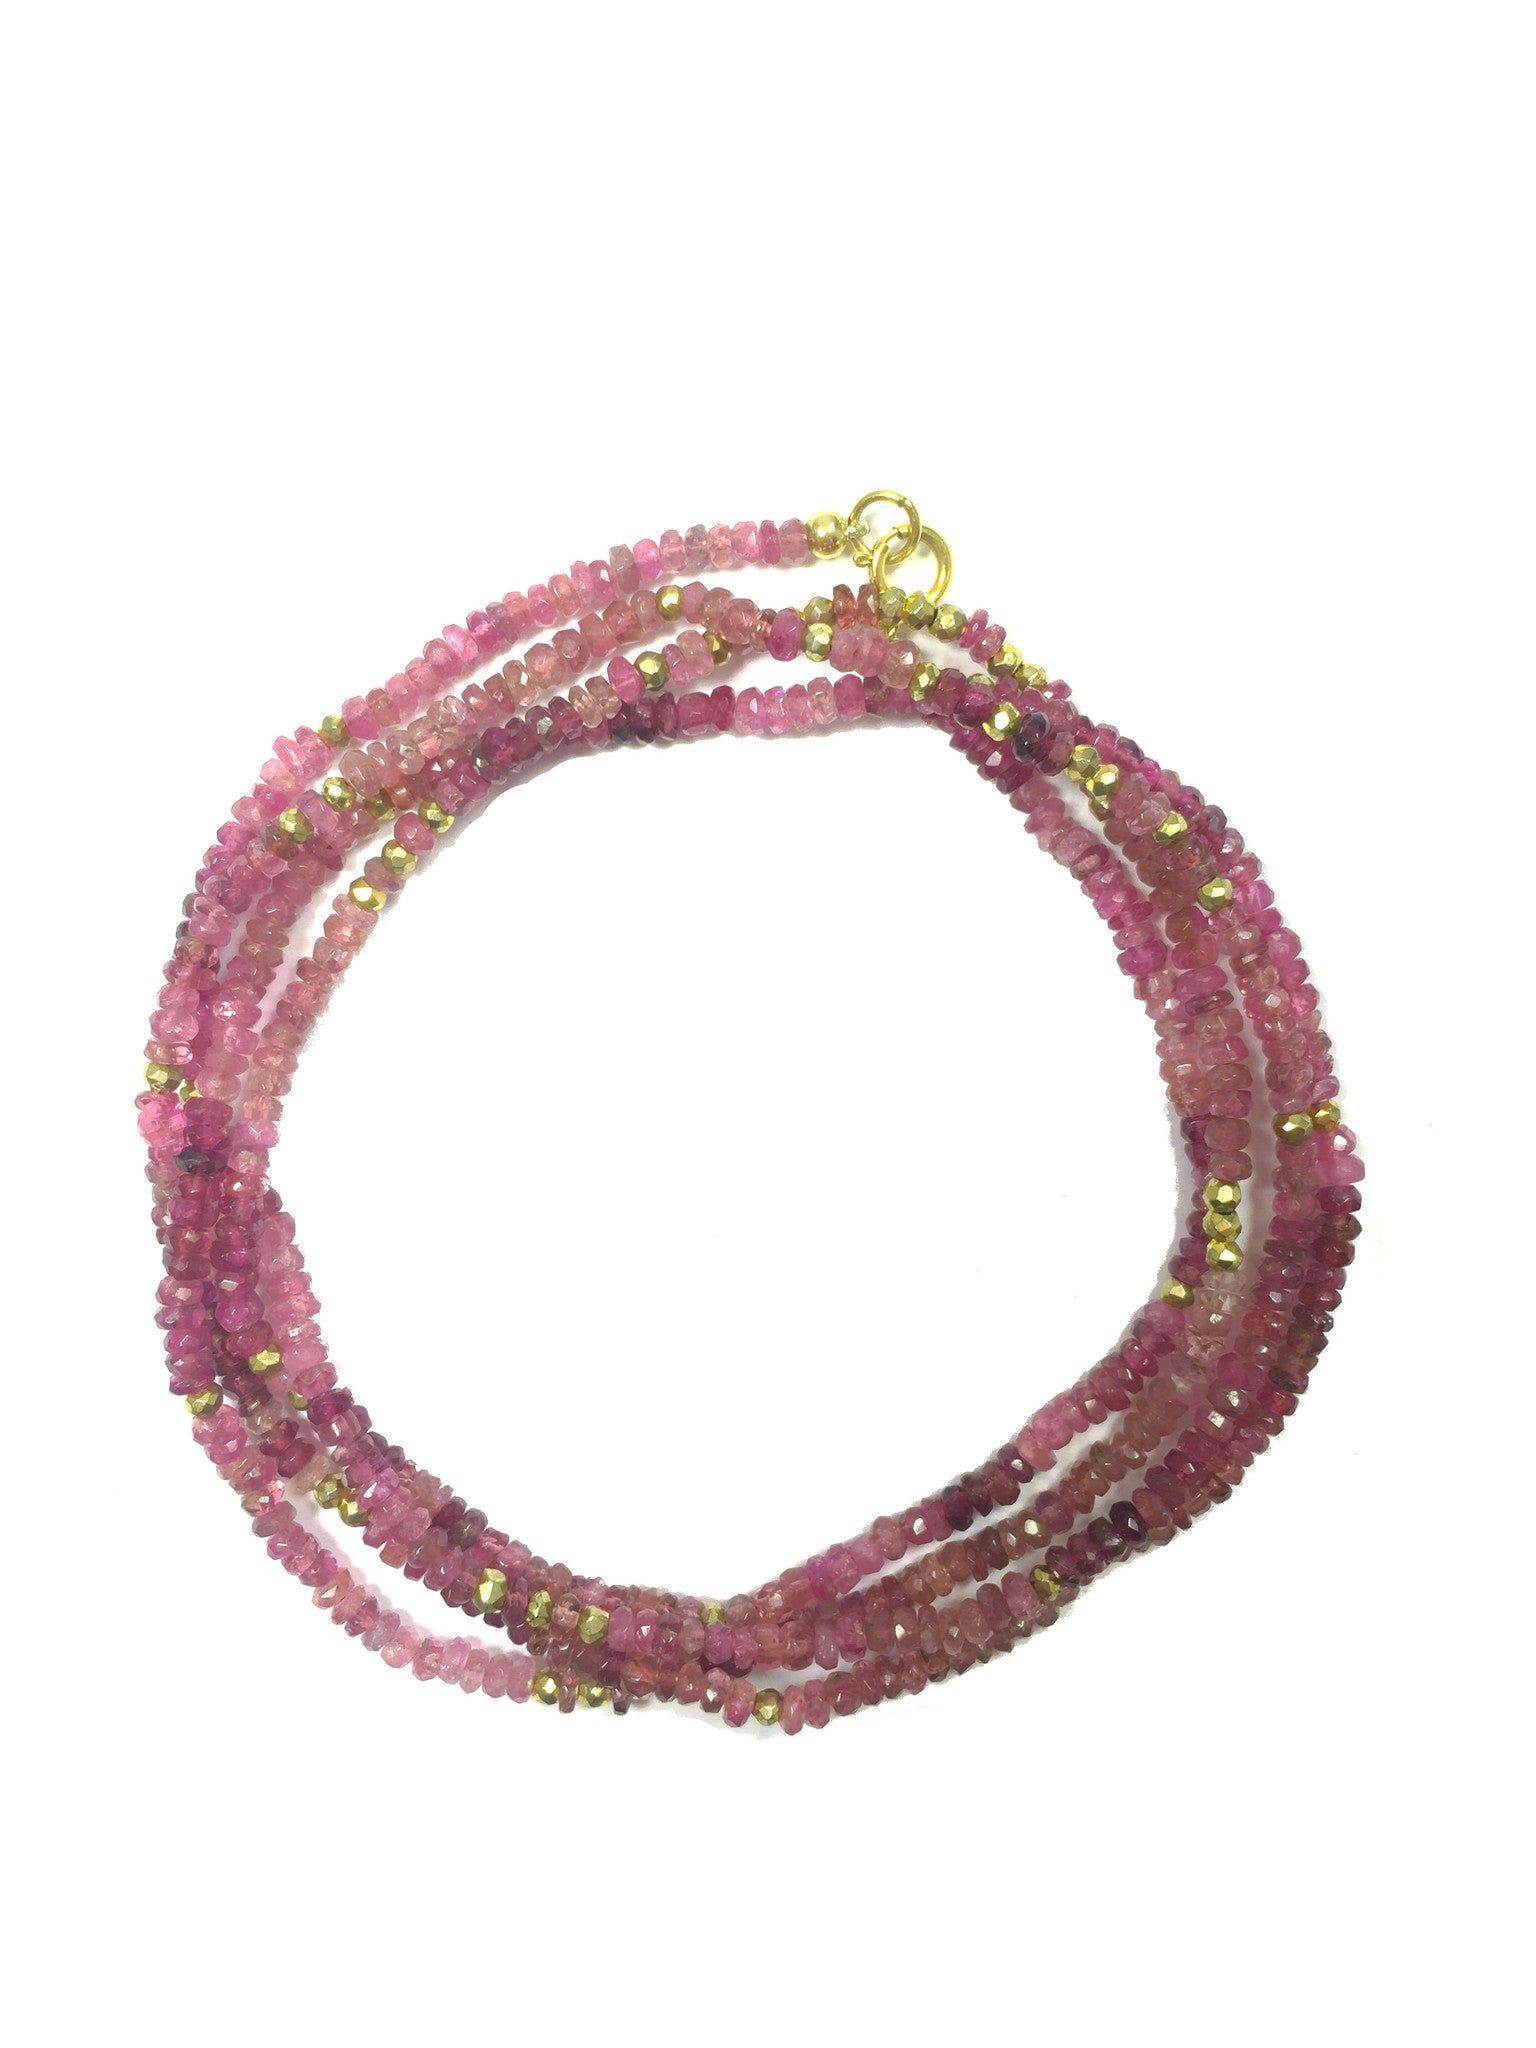 Pink Tourmaline Long Necklace